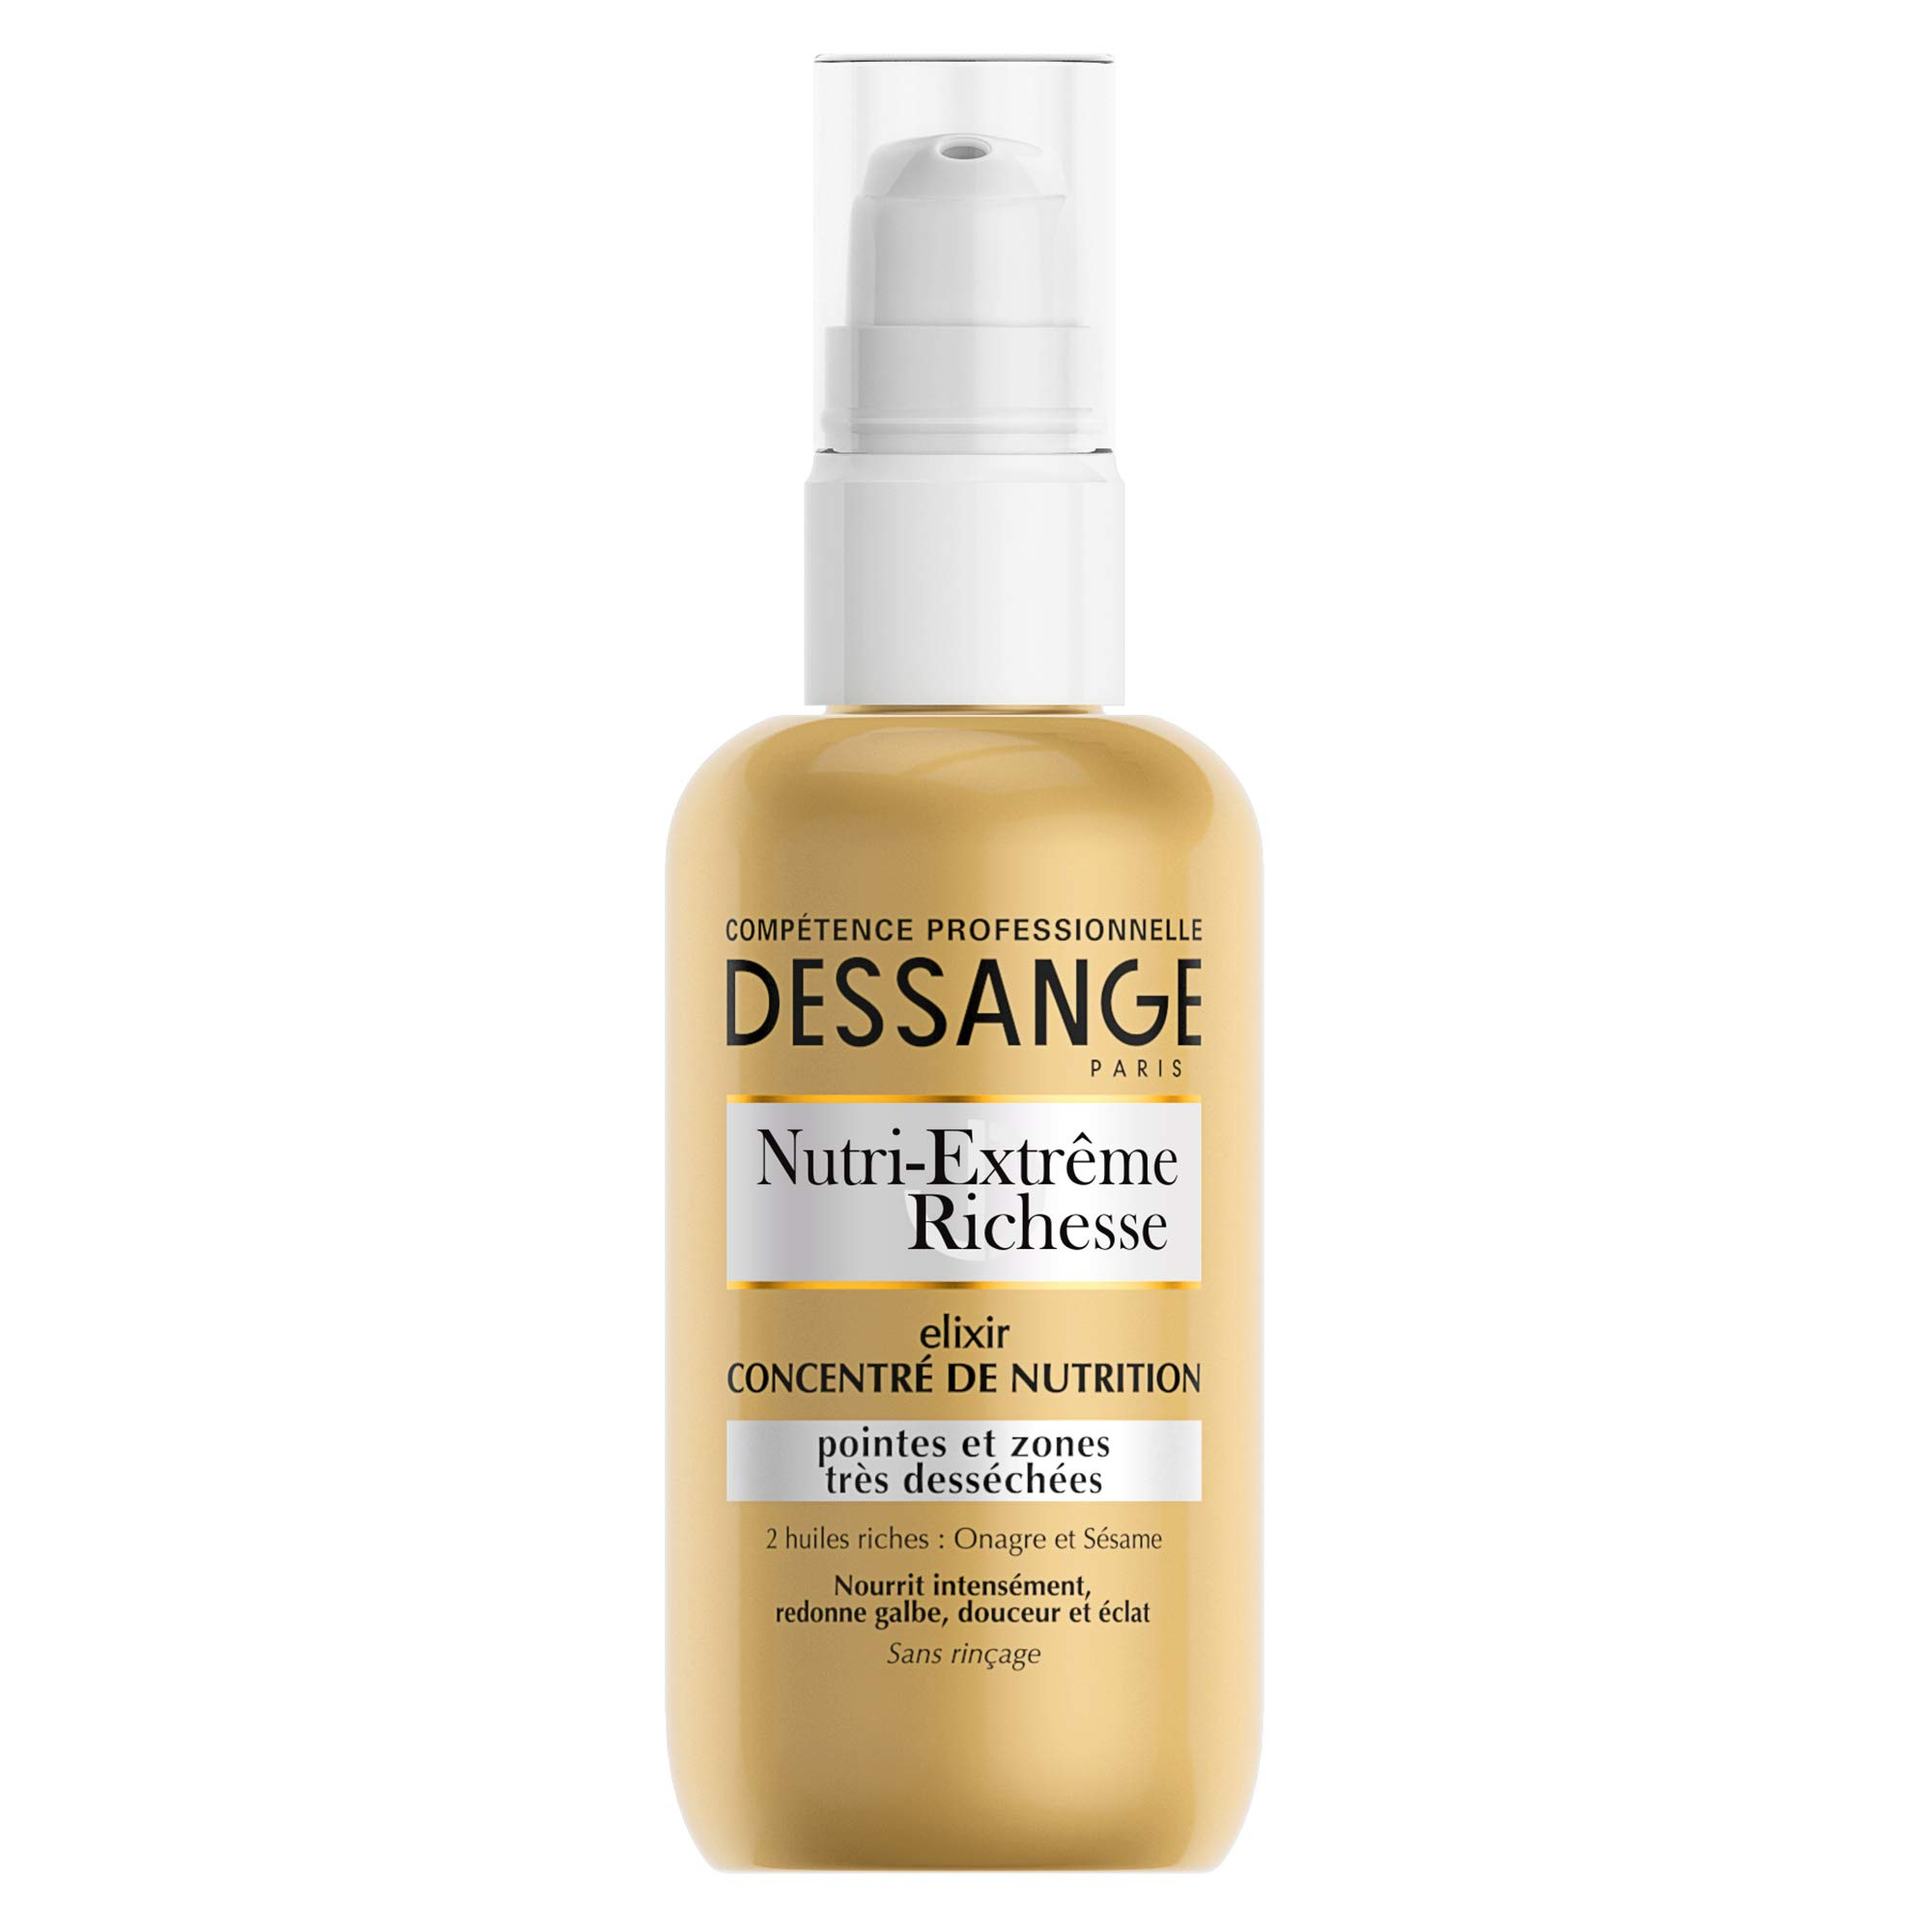 Dessange Nutri-Extreme Richness Elixir Concentrated Nutrition Care No Rinse for Very Dry Tips and Areas 100 ml